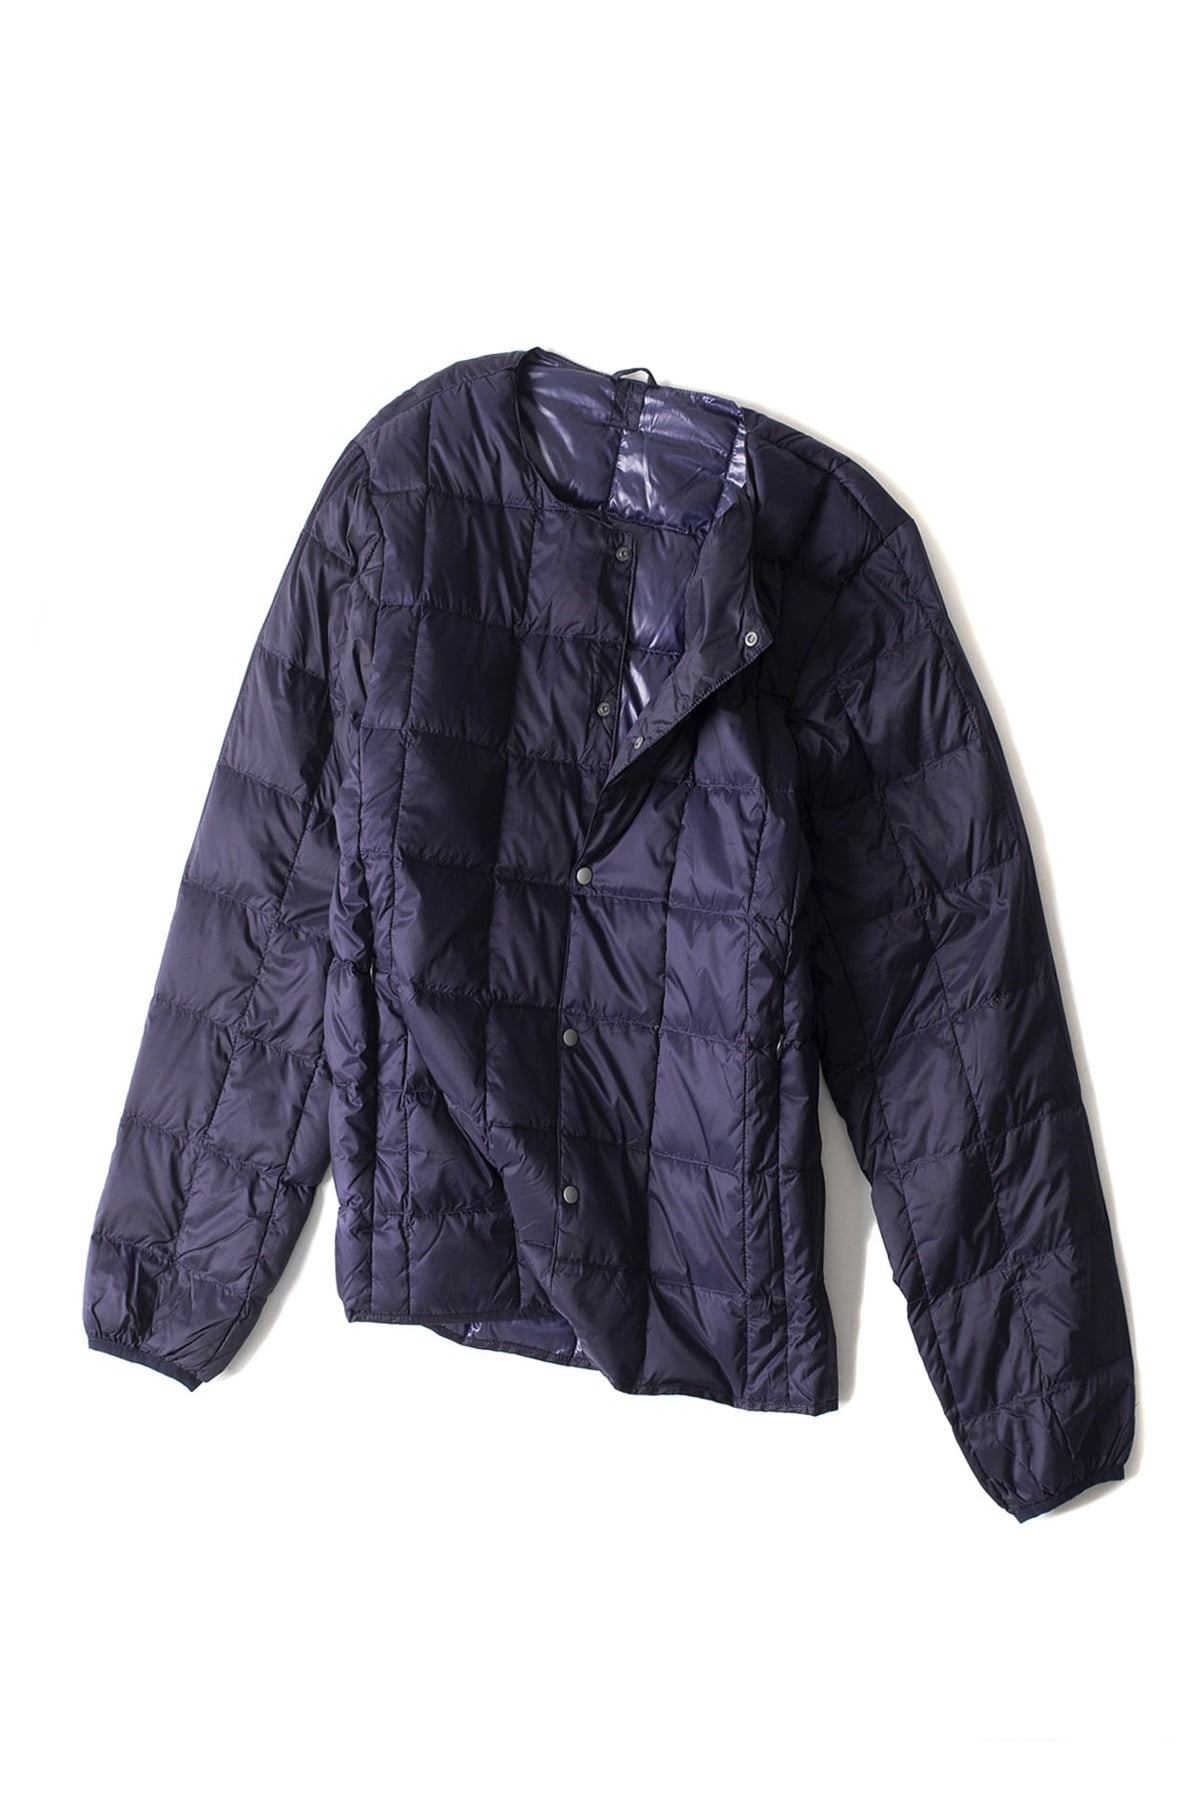 TAION : Crew Next Button Down Jacket (Navy)